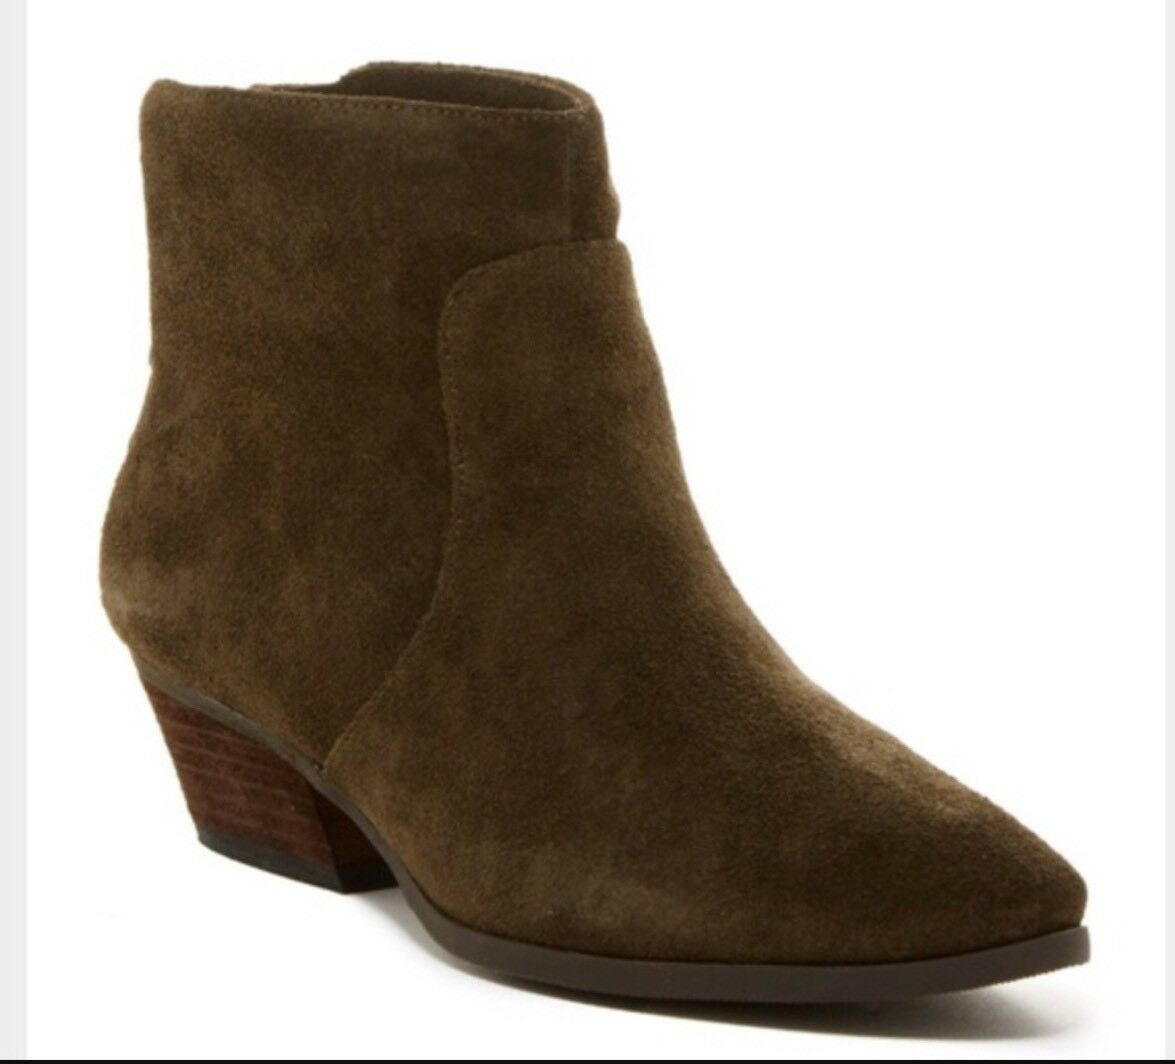 ️Vince Camuto Cinza avvioie Suede Leather Olive Studded 8 NEW ️